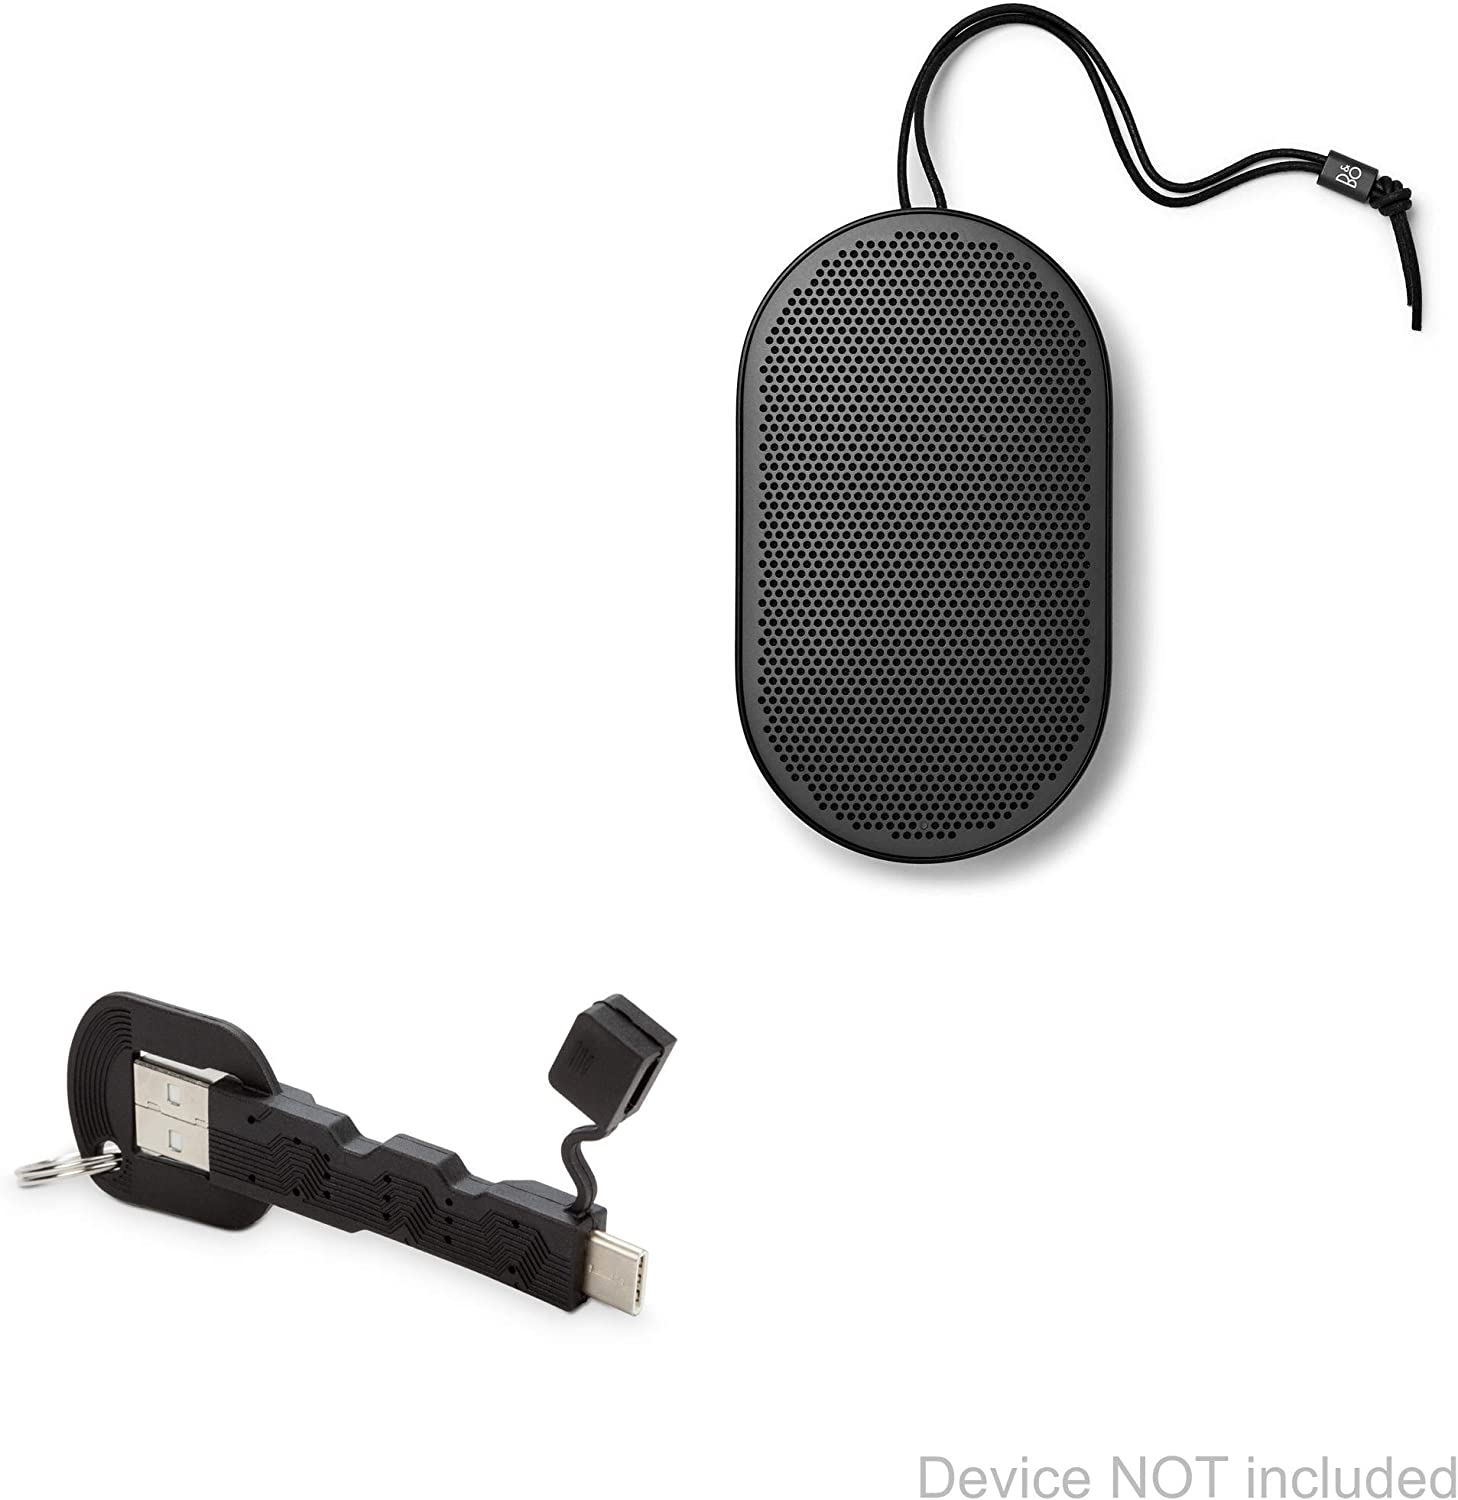 More Mouse Zip hdmi Silver Use with Devices Like Keyboard PRO OTG Adapter Works with Bang /& OLUFSEN Active Beoplay P6 for OTG and USB Type-C Braided Cable Gamepad